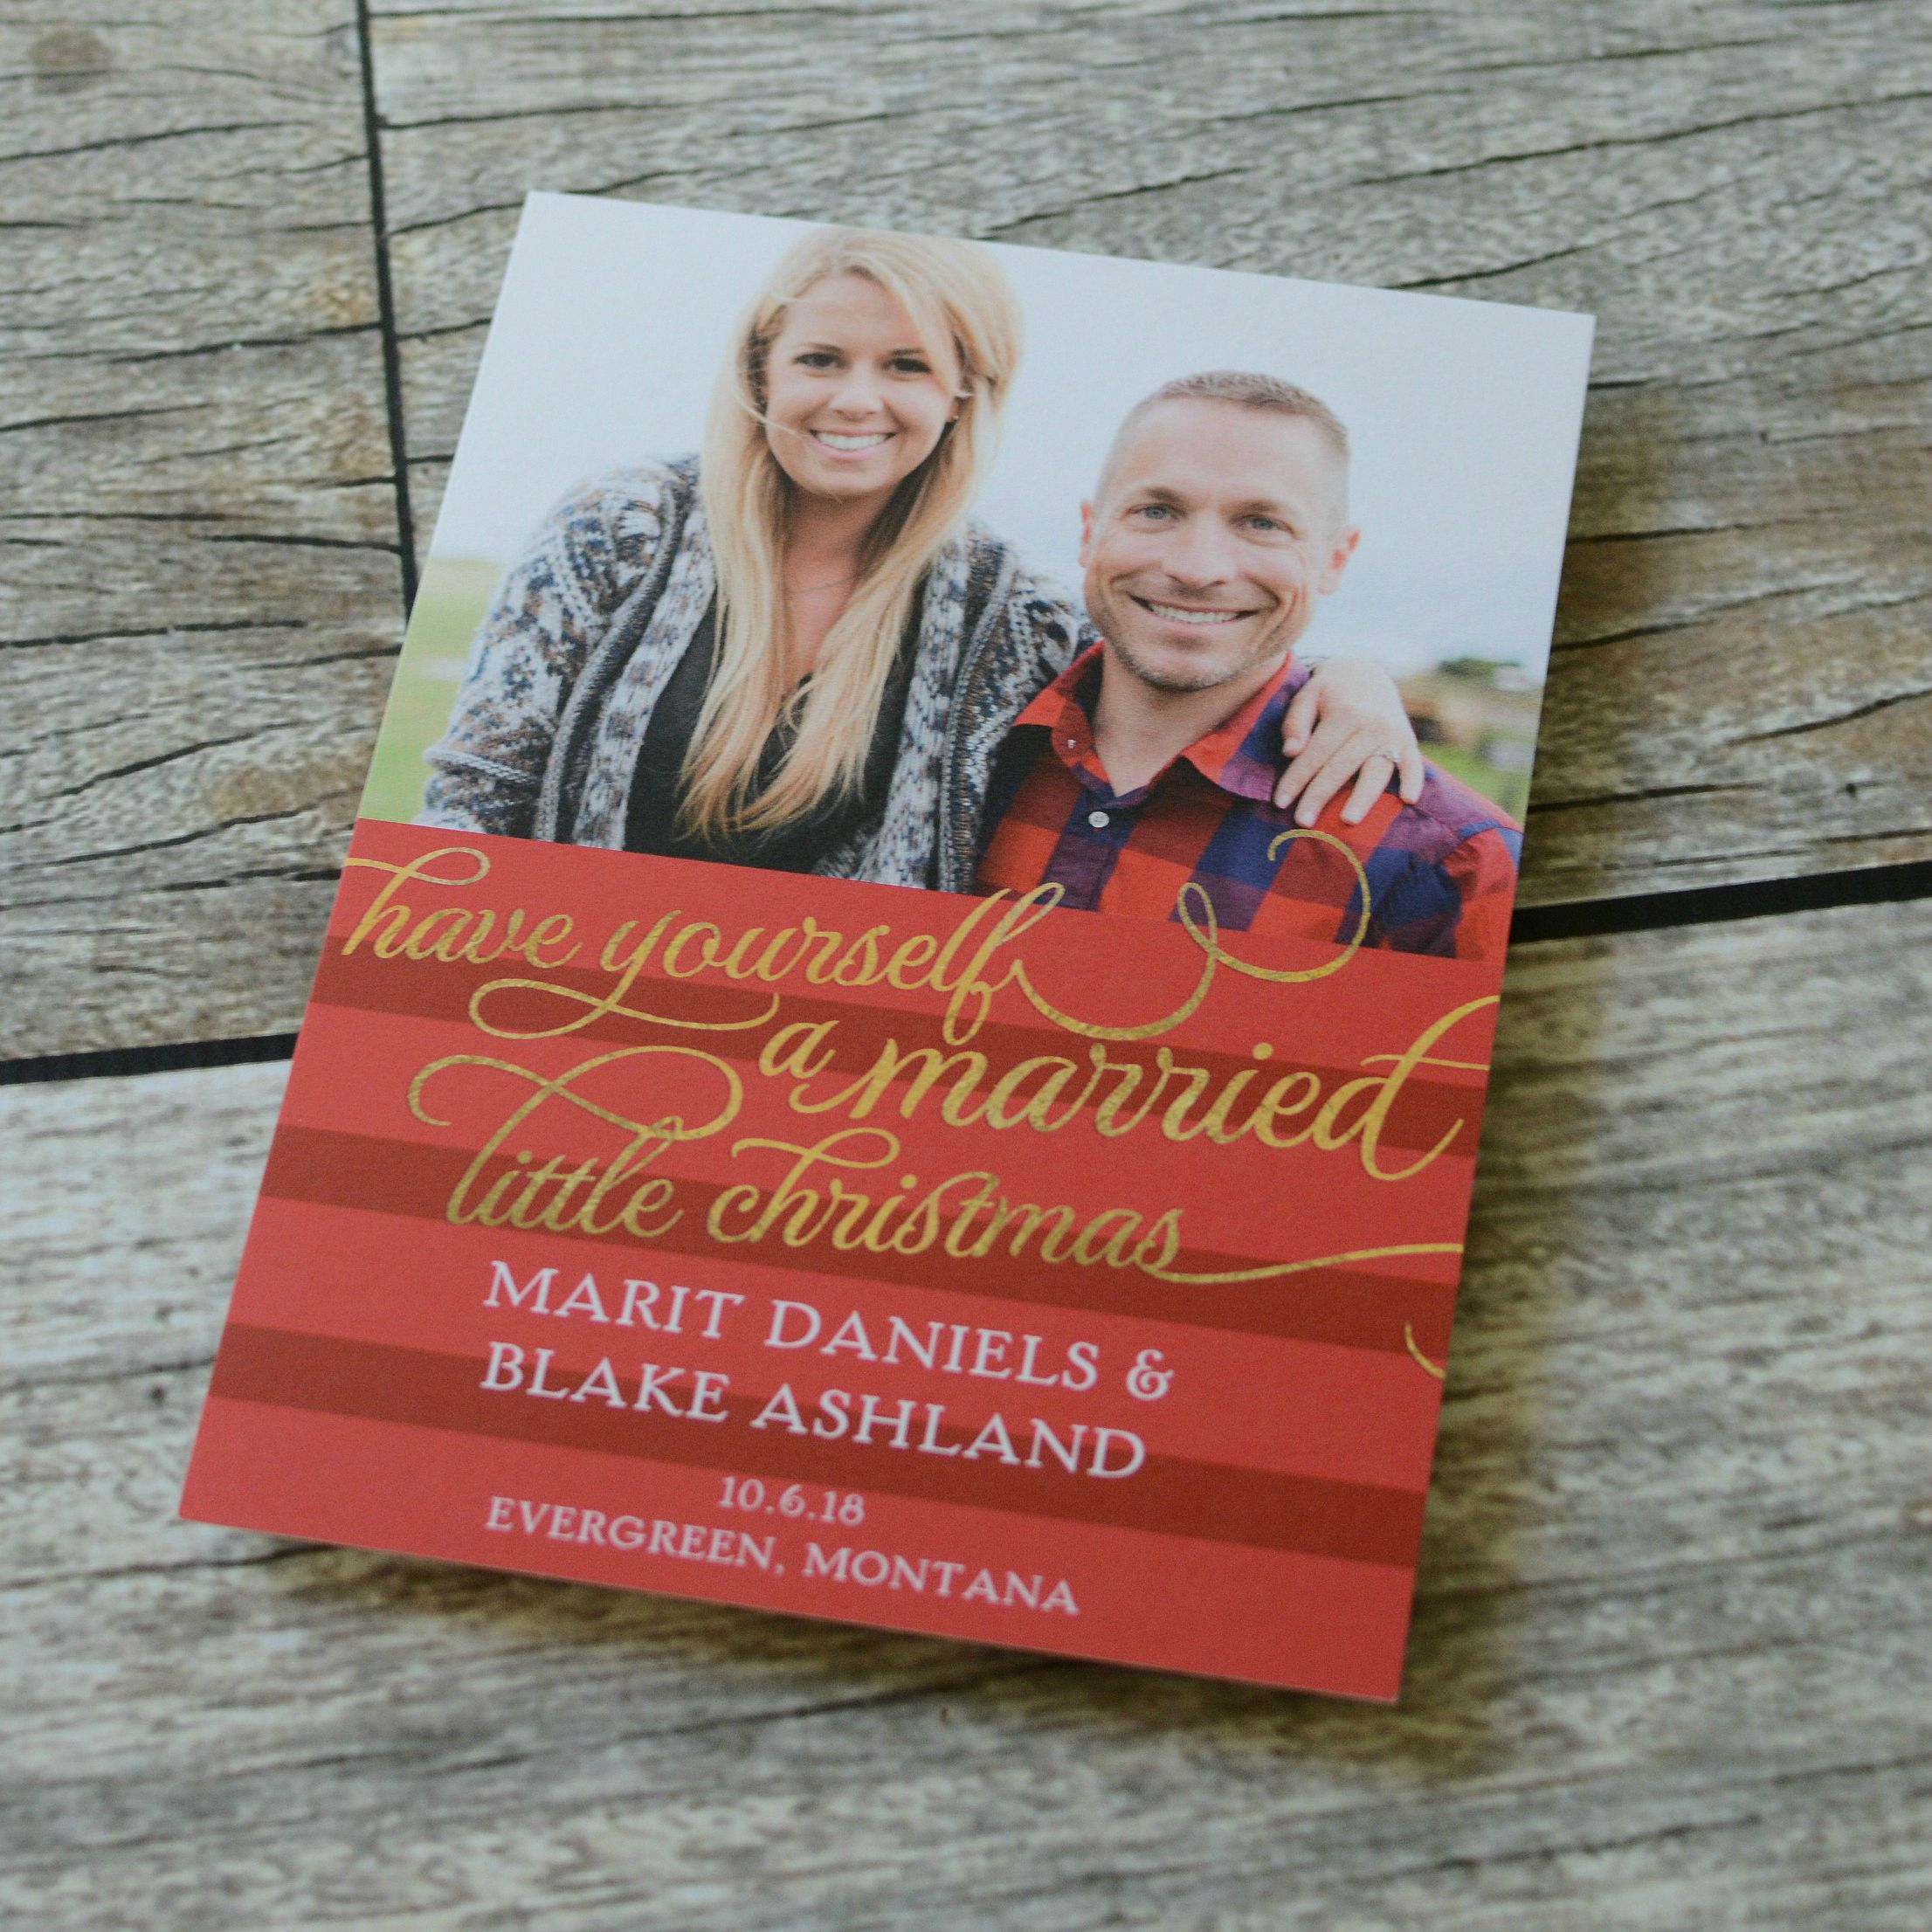 Married Little Christmas - Holiday Card Save the Date | Wedding and ...